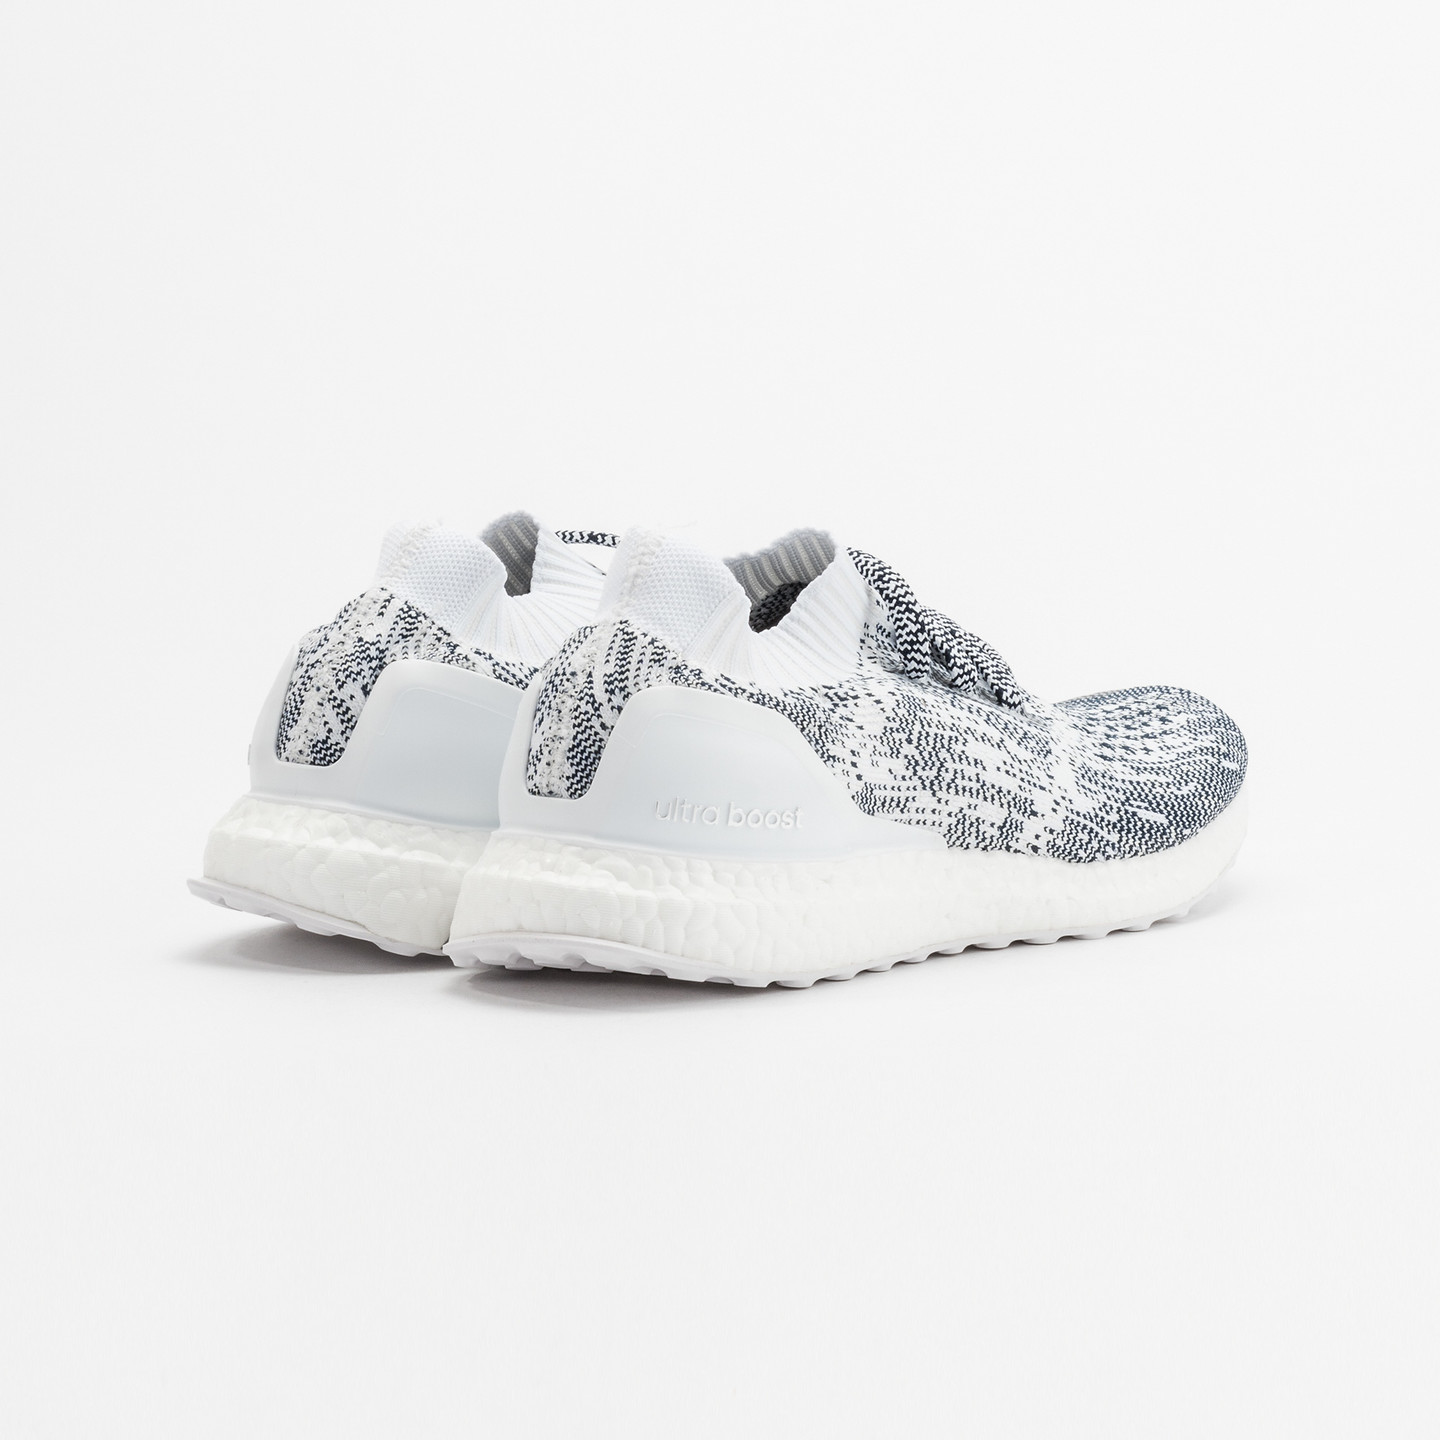 Adidas Ultra Boost Uncaged 'Oreo' White / Black BA9616-45.33